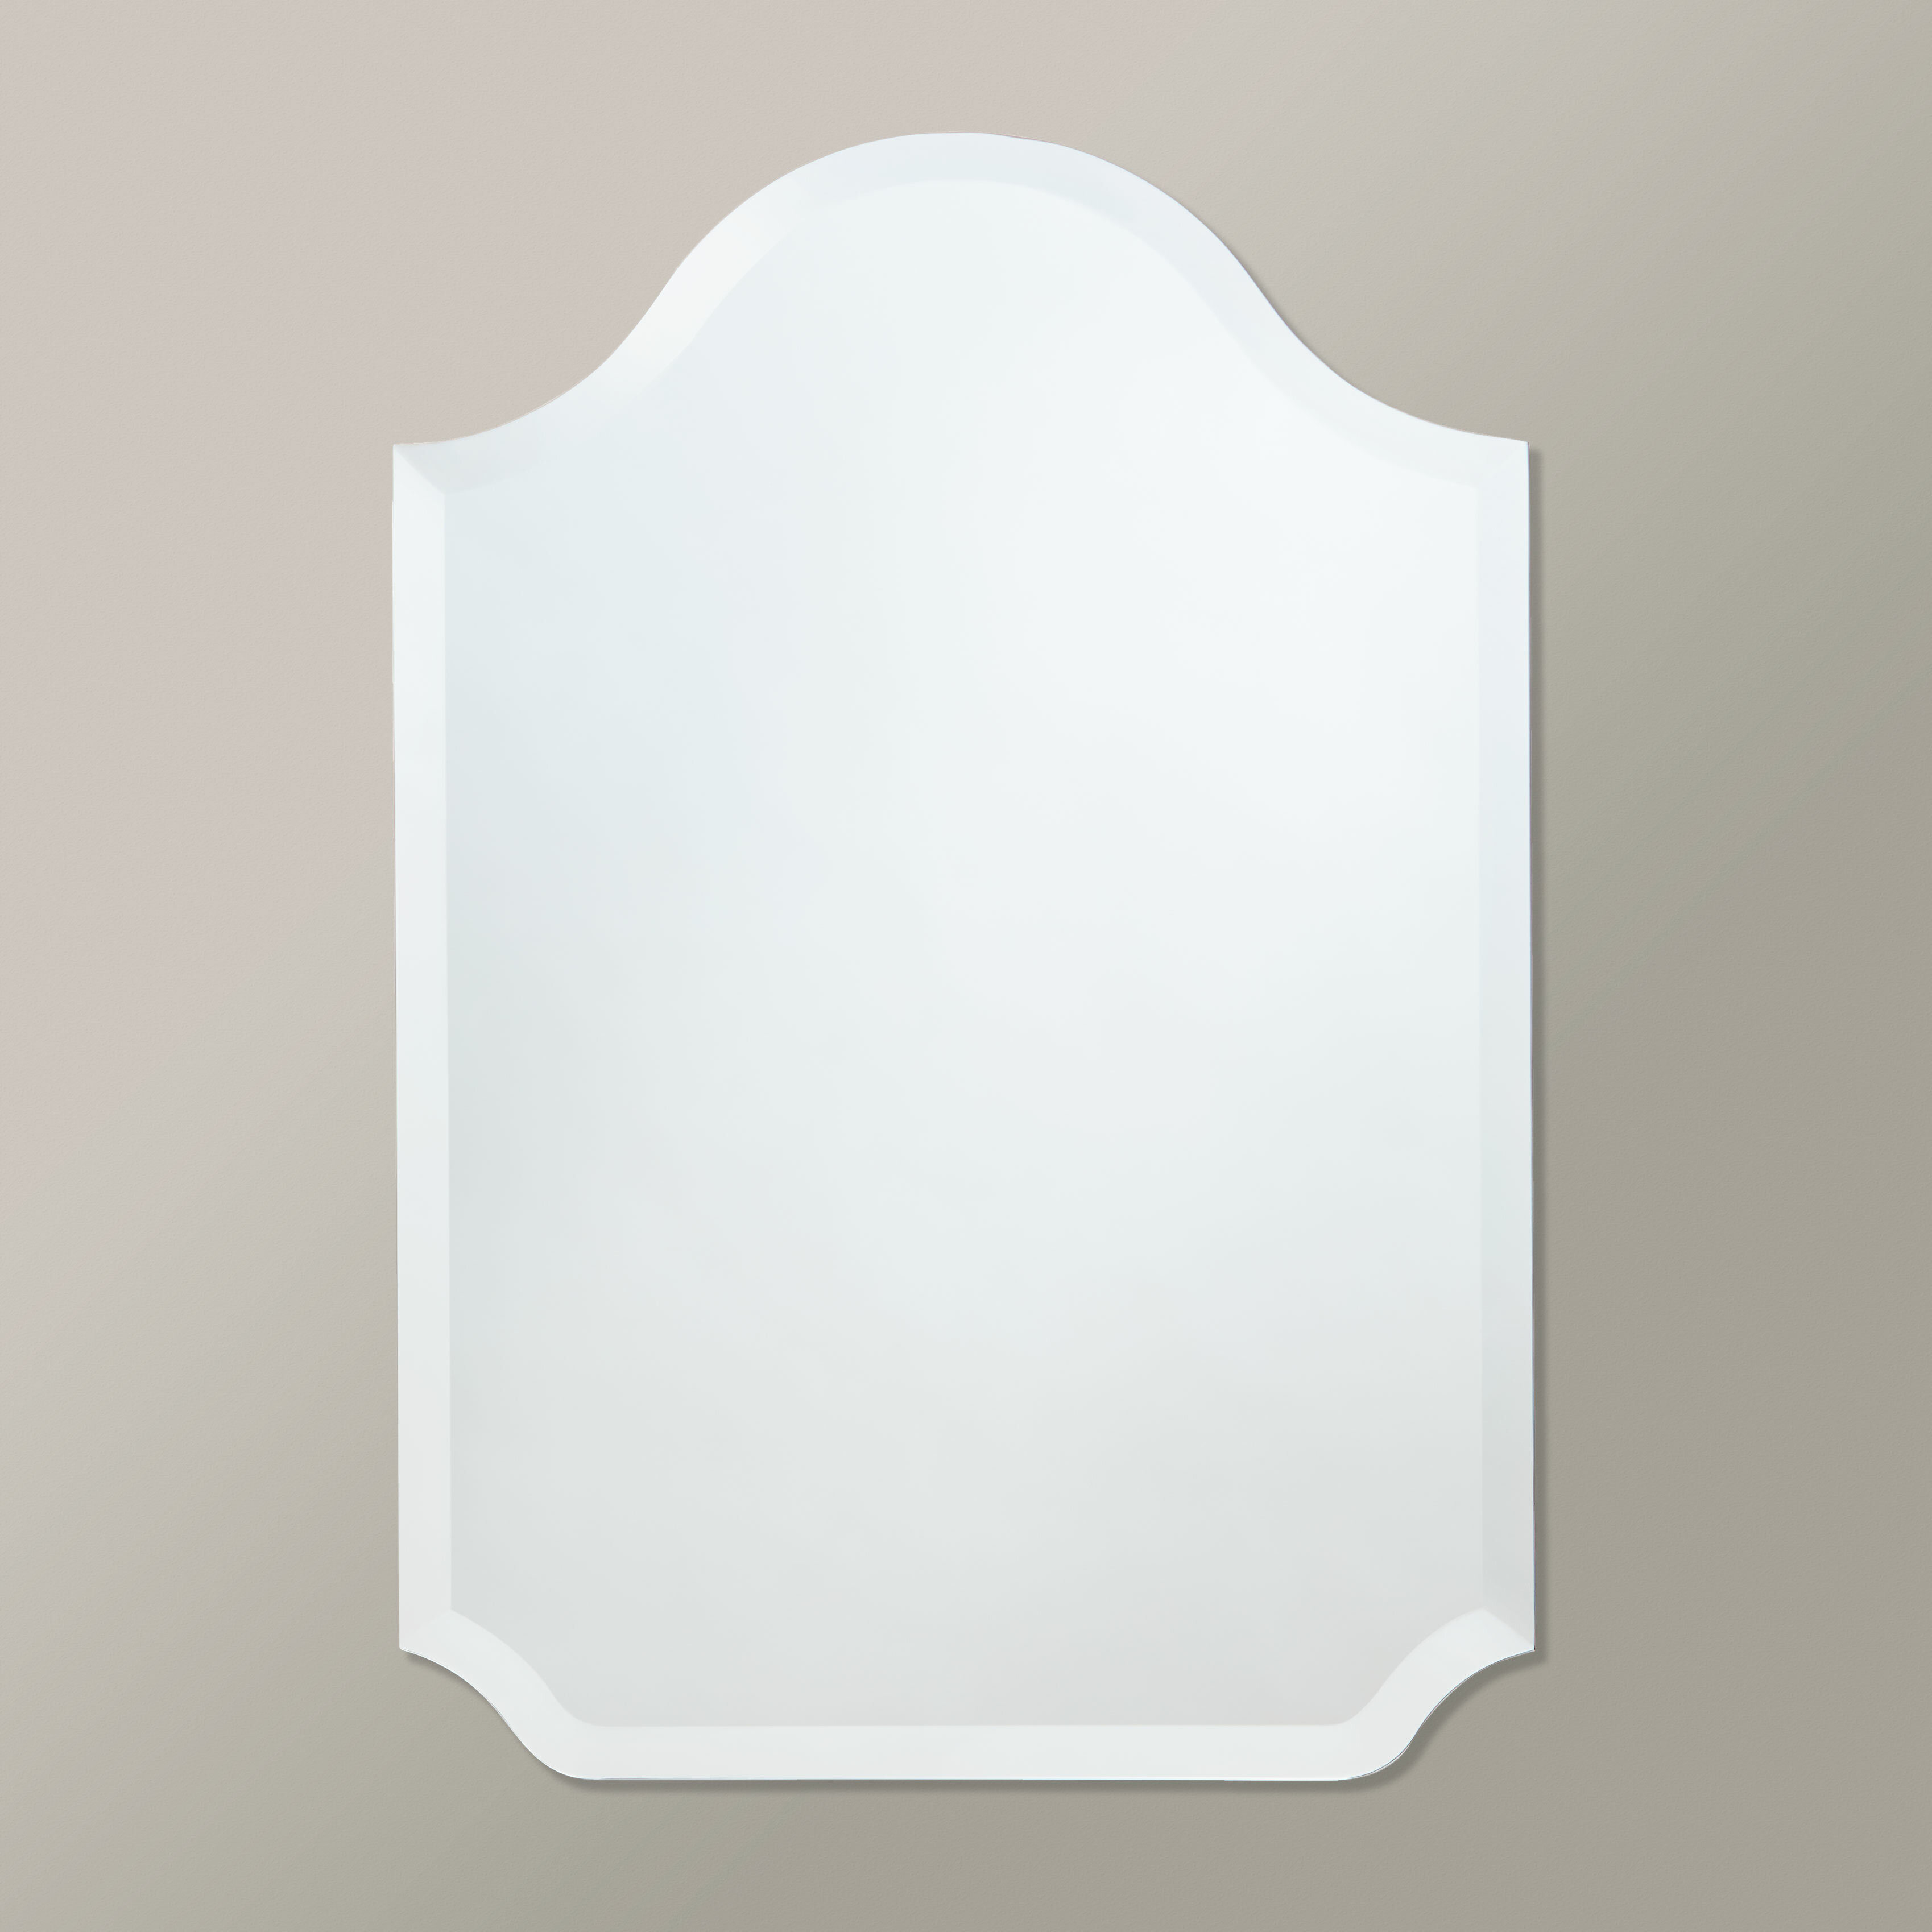 Scalloped Glass Mirror | Wayfair for Dariel Tall Arched Scalloped Wall Mirrors (Image 21 of 30)